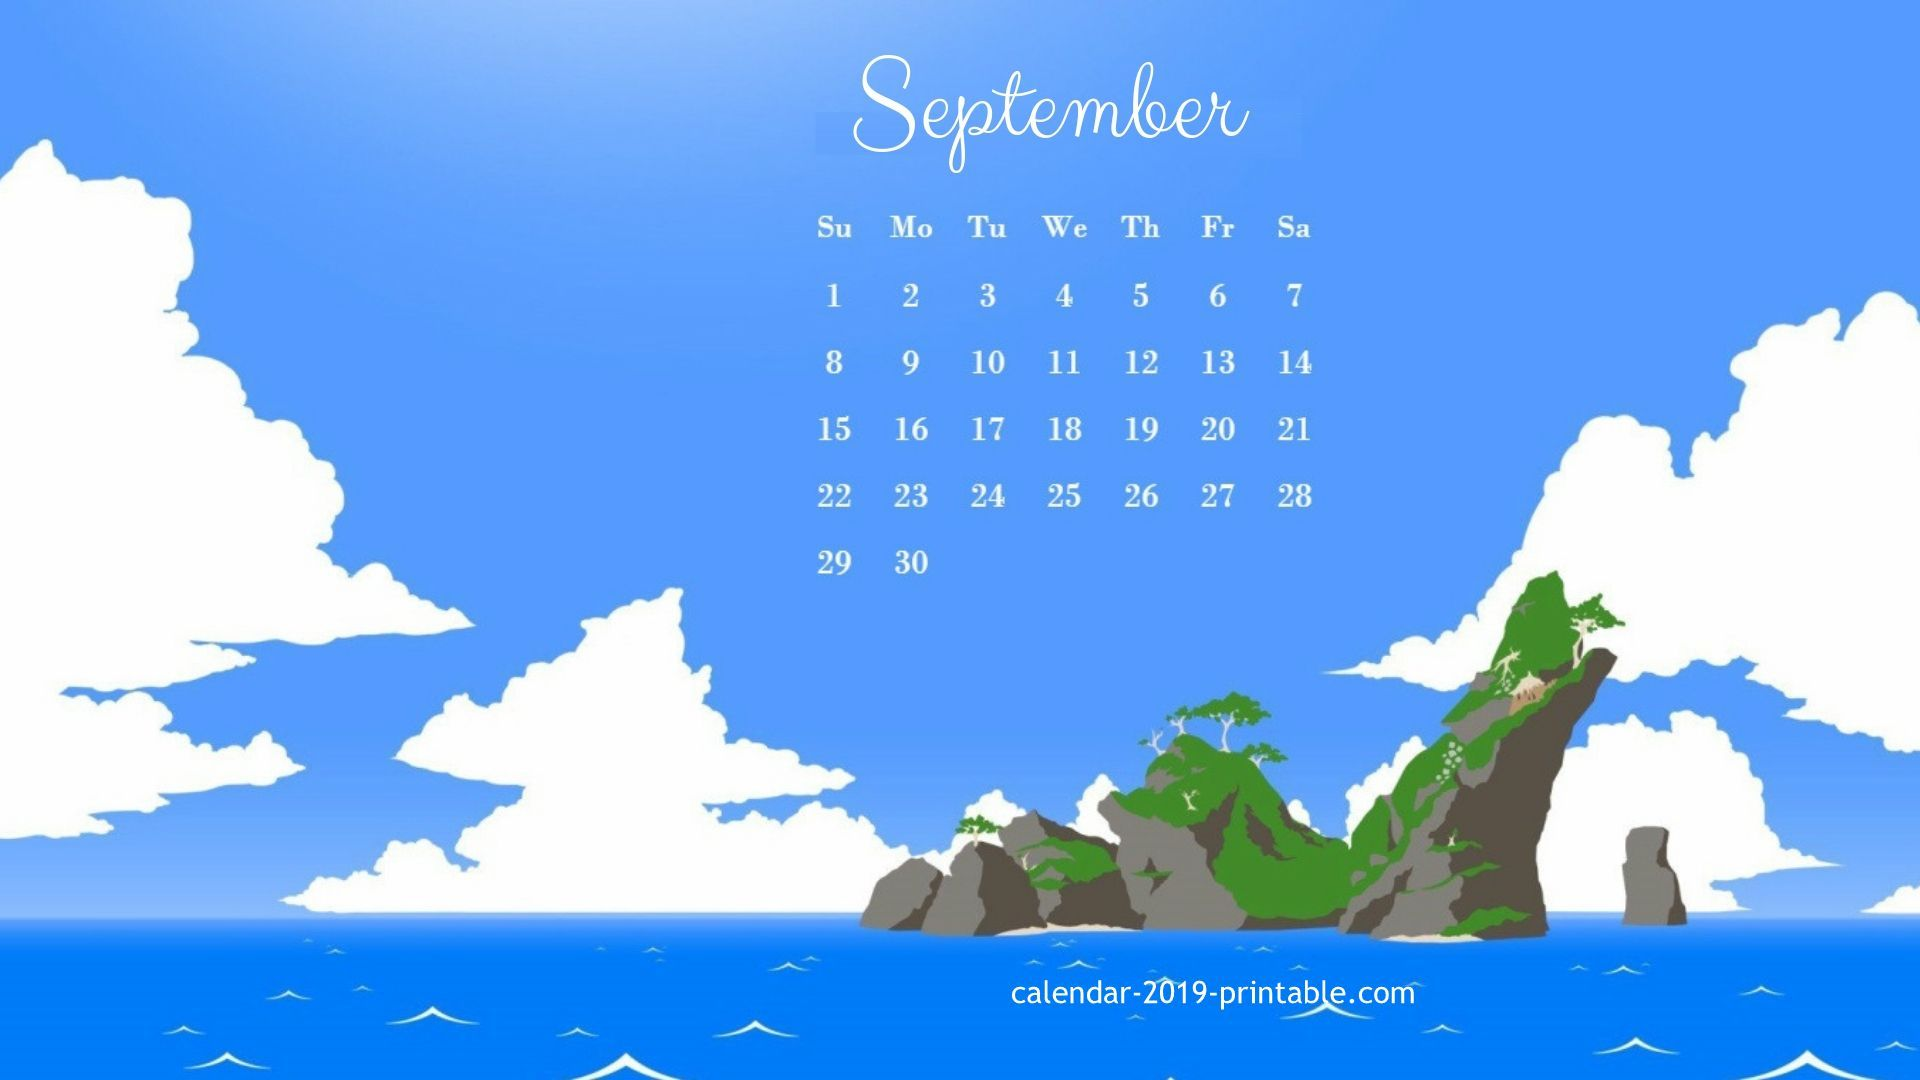 Desktop Calendar for September 2019